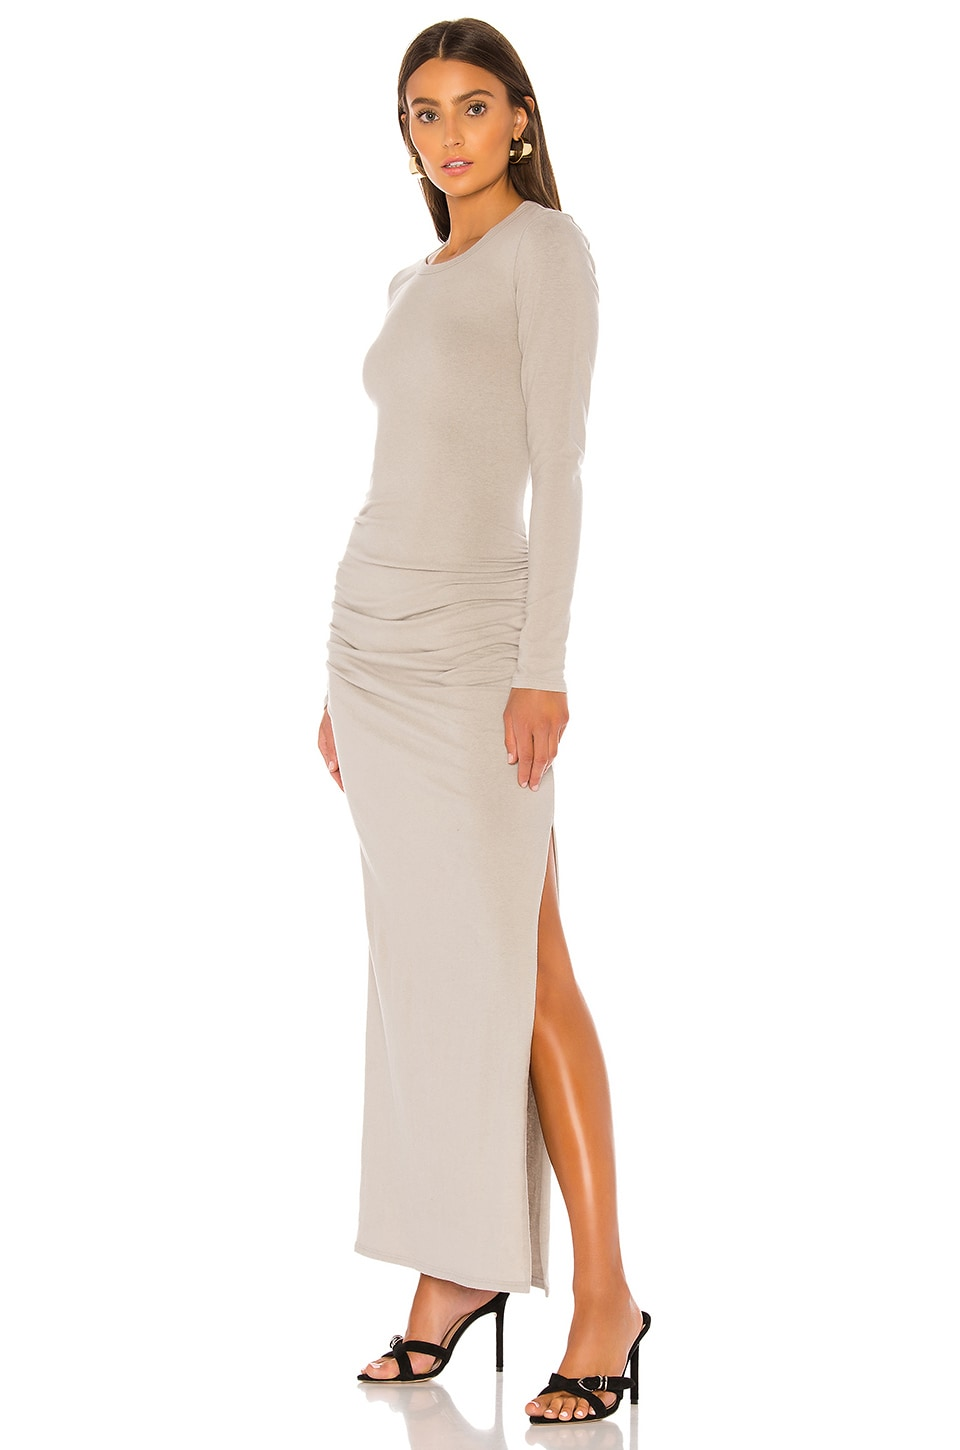 James Perse Sueded Jersey Long Sleeve Split Dress in Shadow